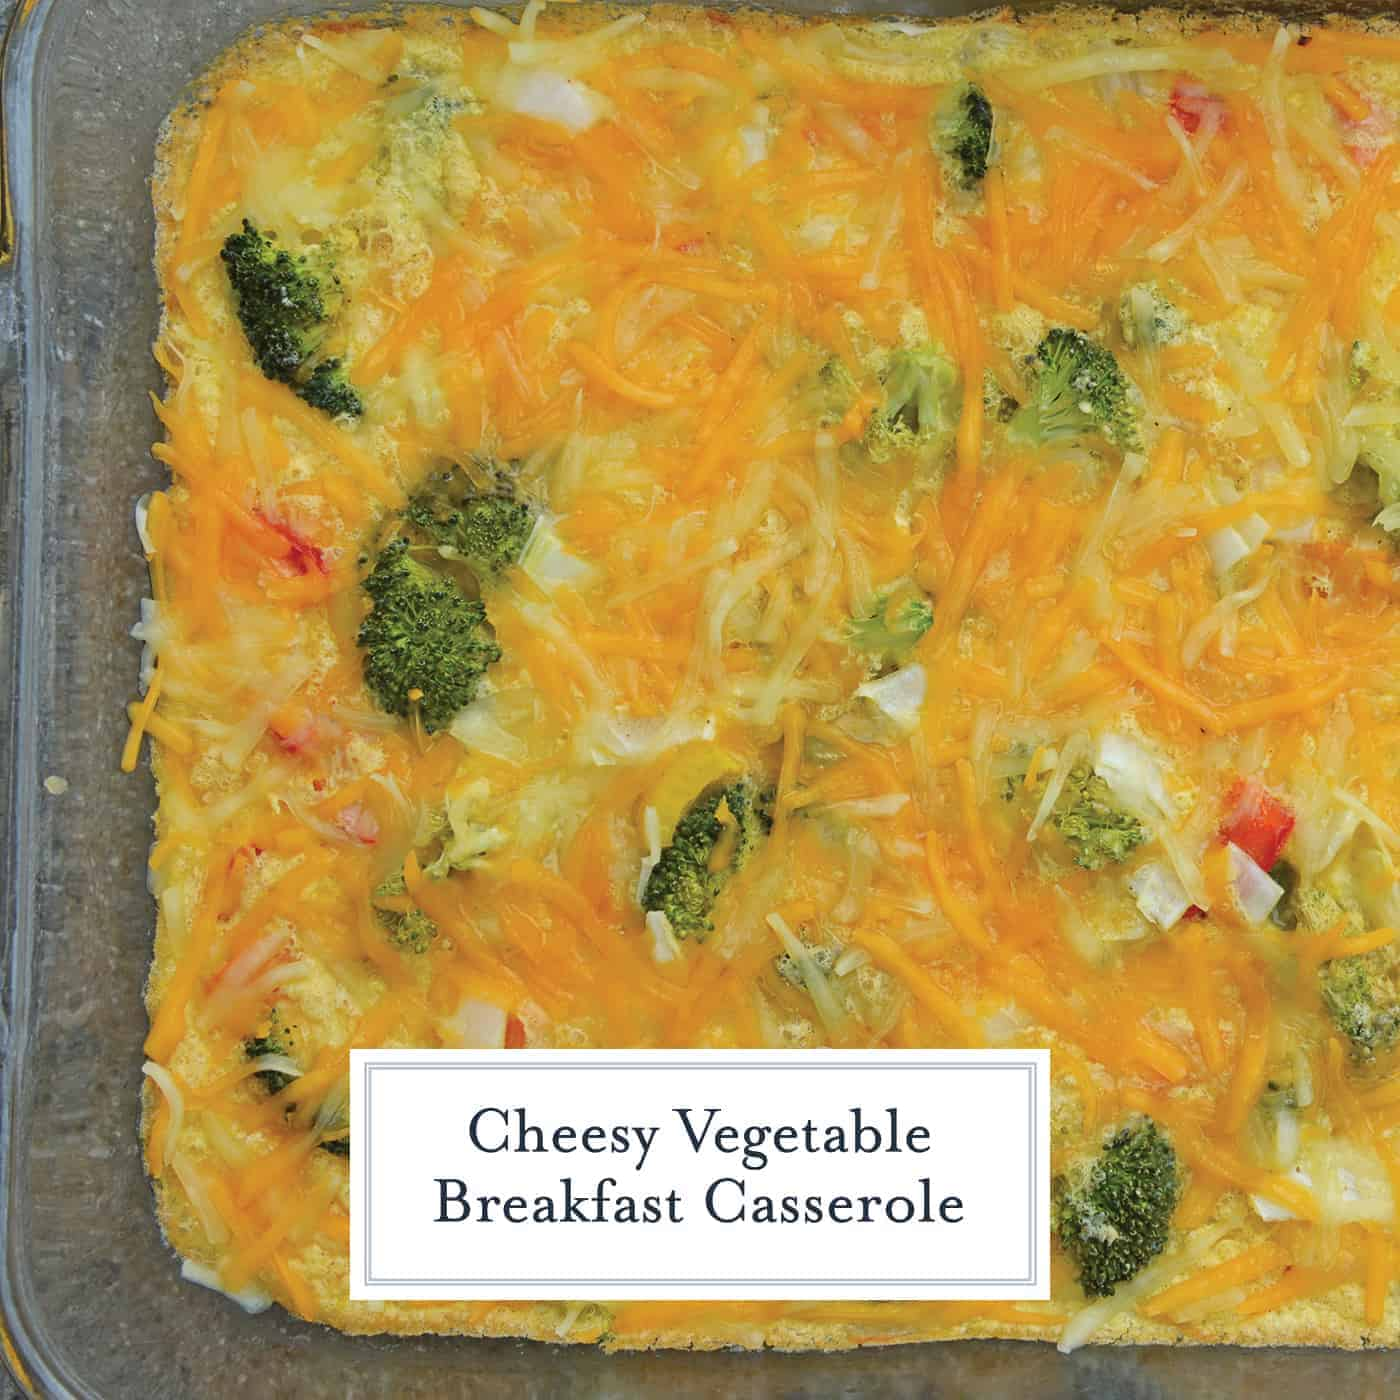 Cheesy Vegetable Breakfast Casserole uses fluffy eggs with broccoli, bell pepper, onion and cheese to make a delightful breakfast that is perfect for feeding a crowd!#vegetablecasserole #breakfastcasserole www.savoryexperiments.com